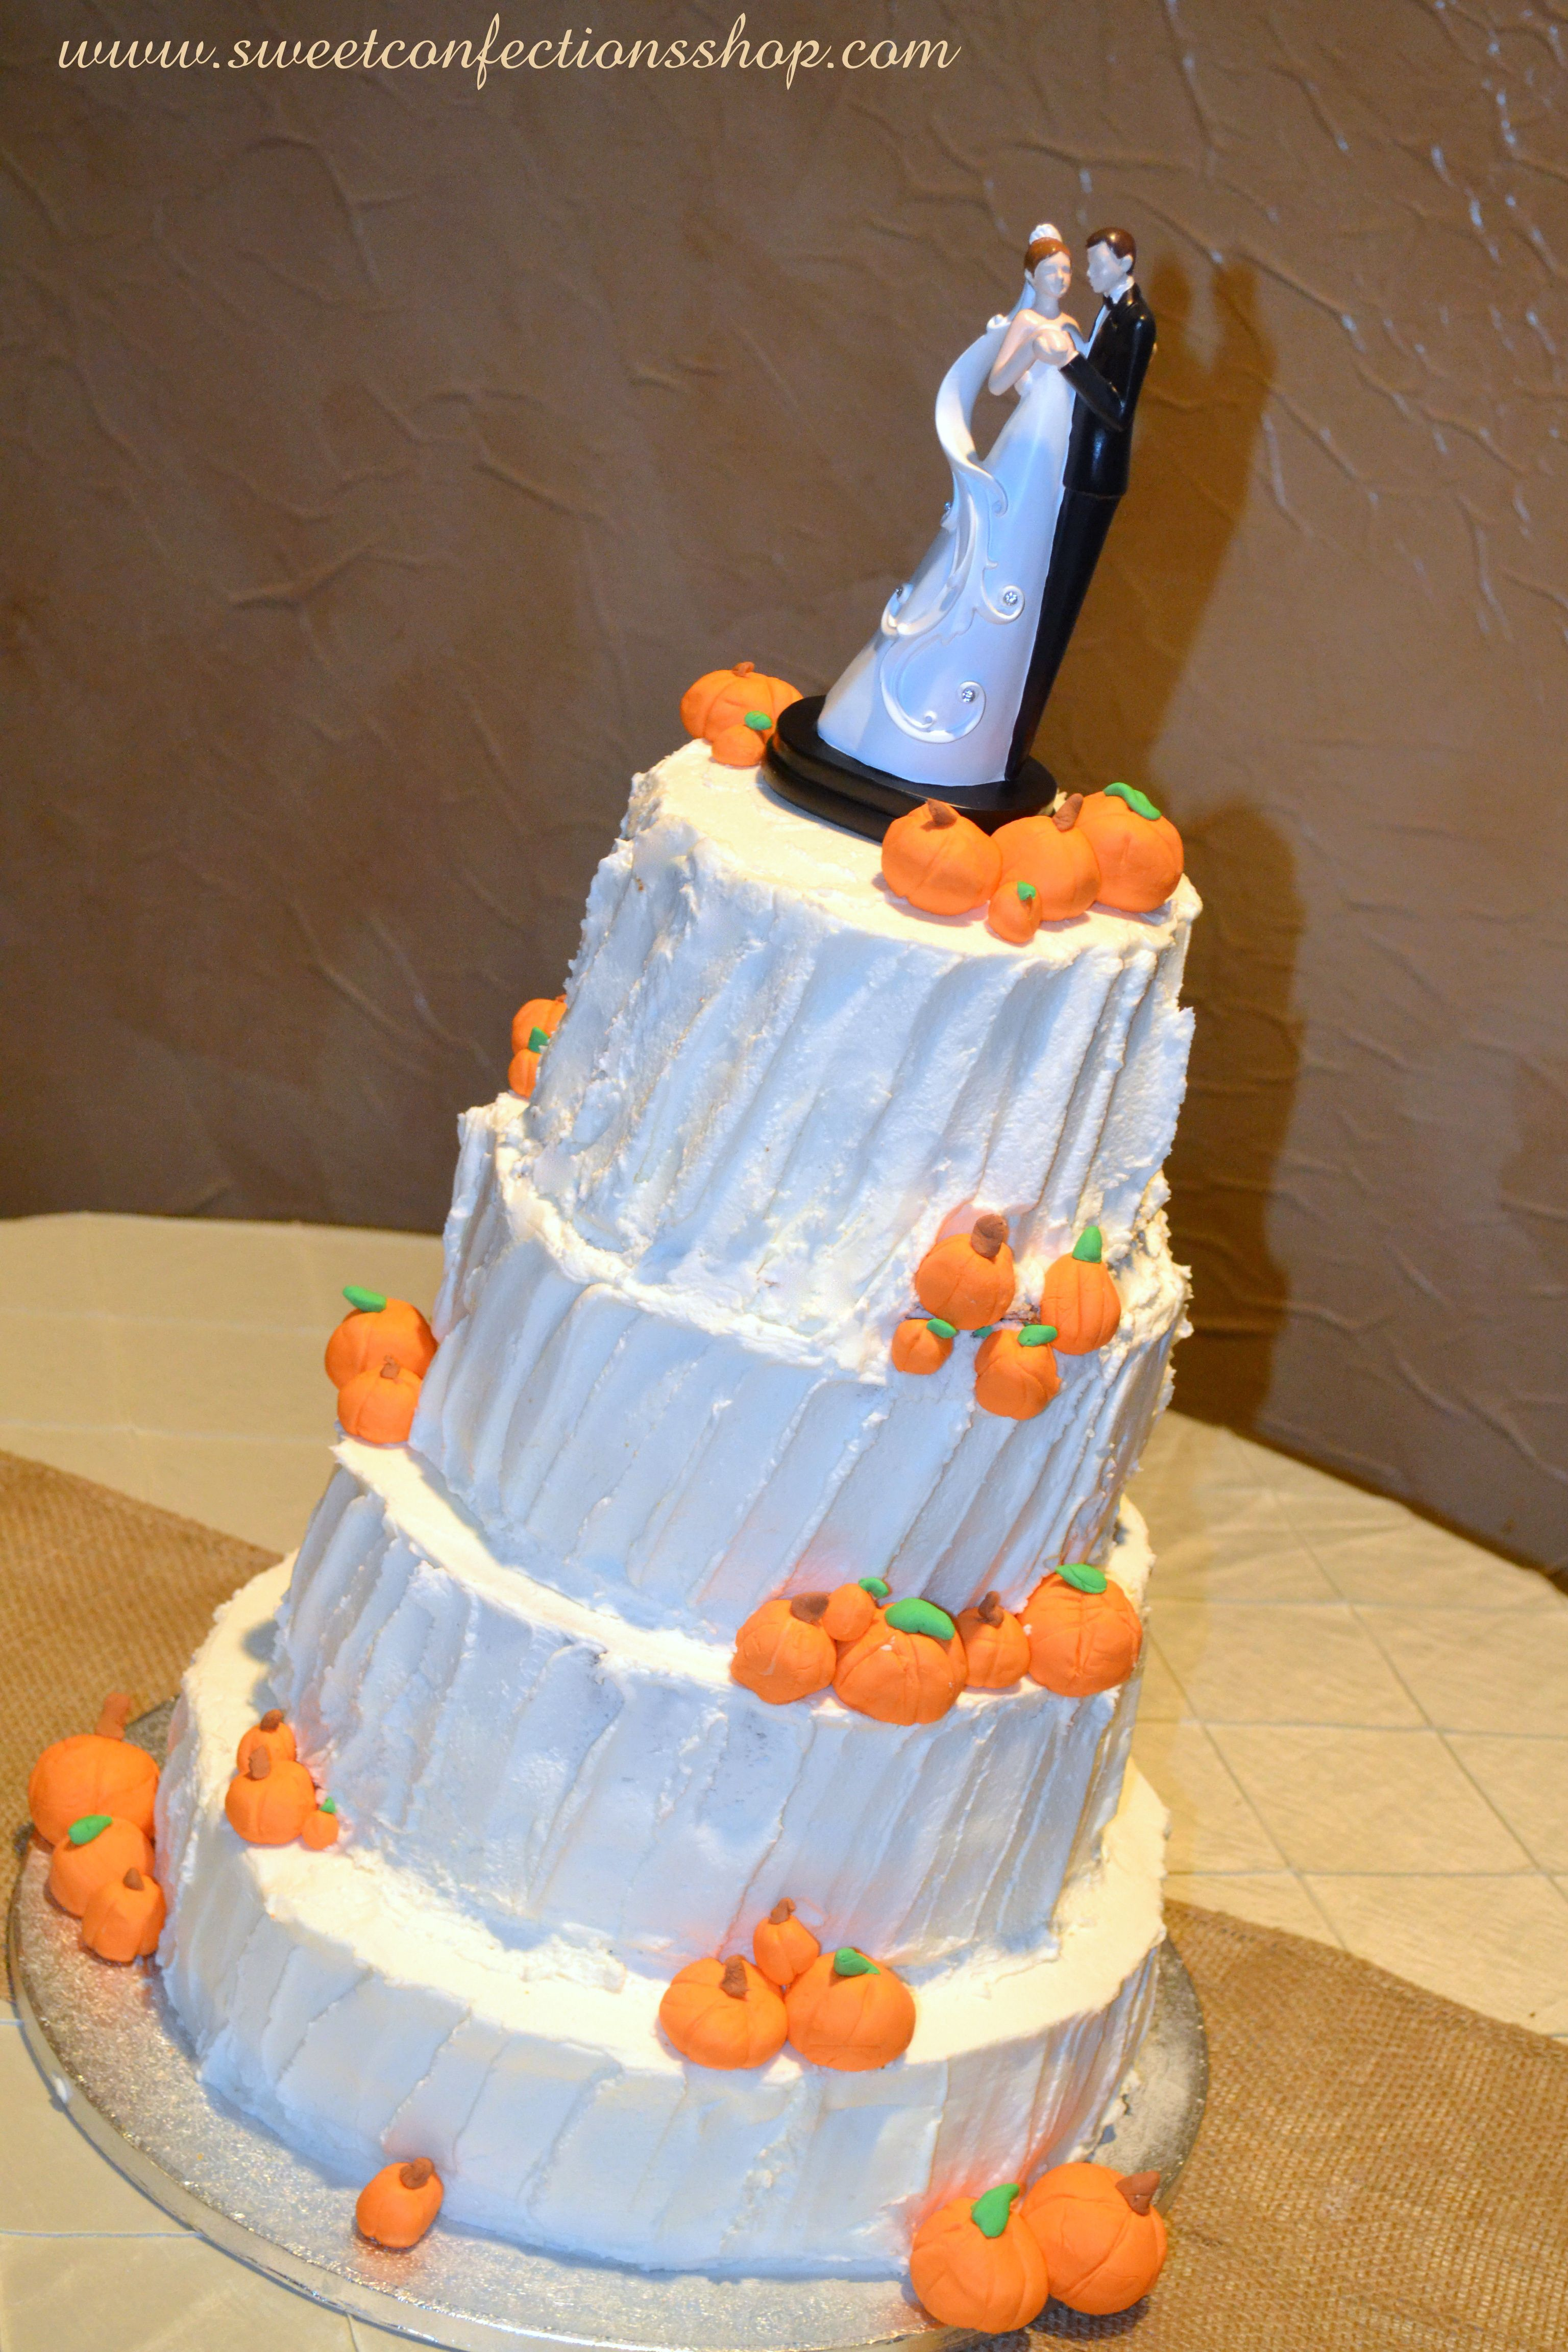 Pumpkin wedding cake.  This has fondant and chocolate pumpkins.  The icing is textured butter cream